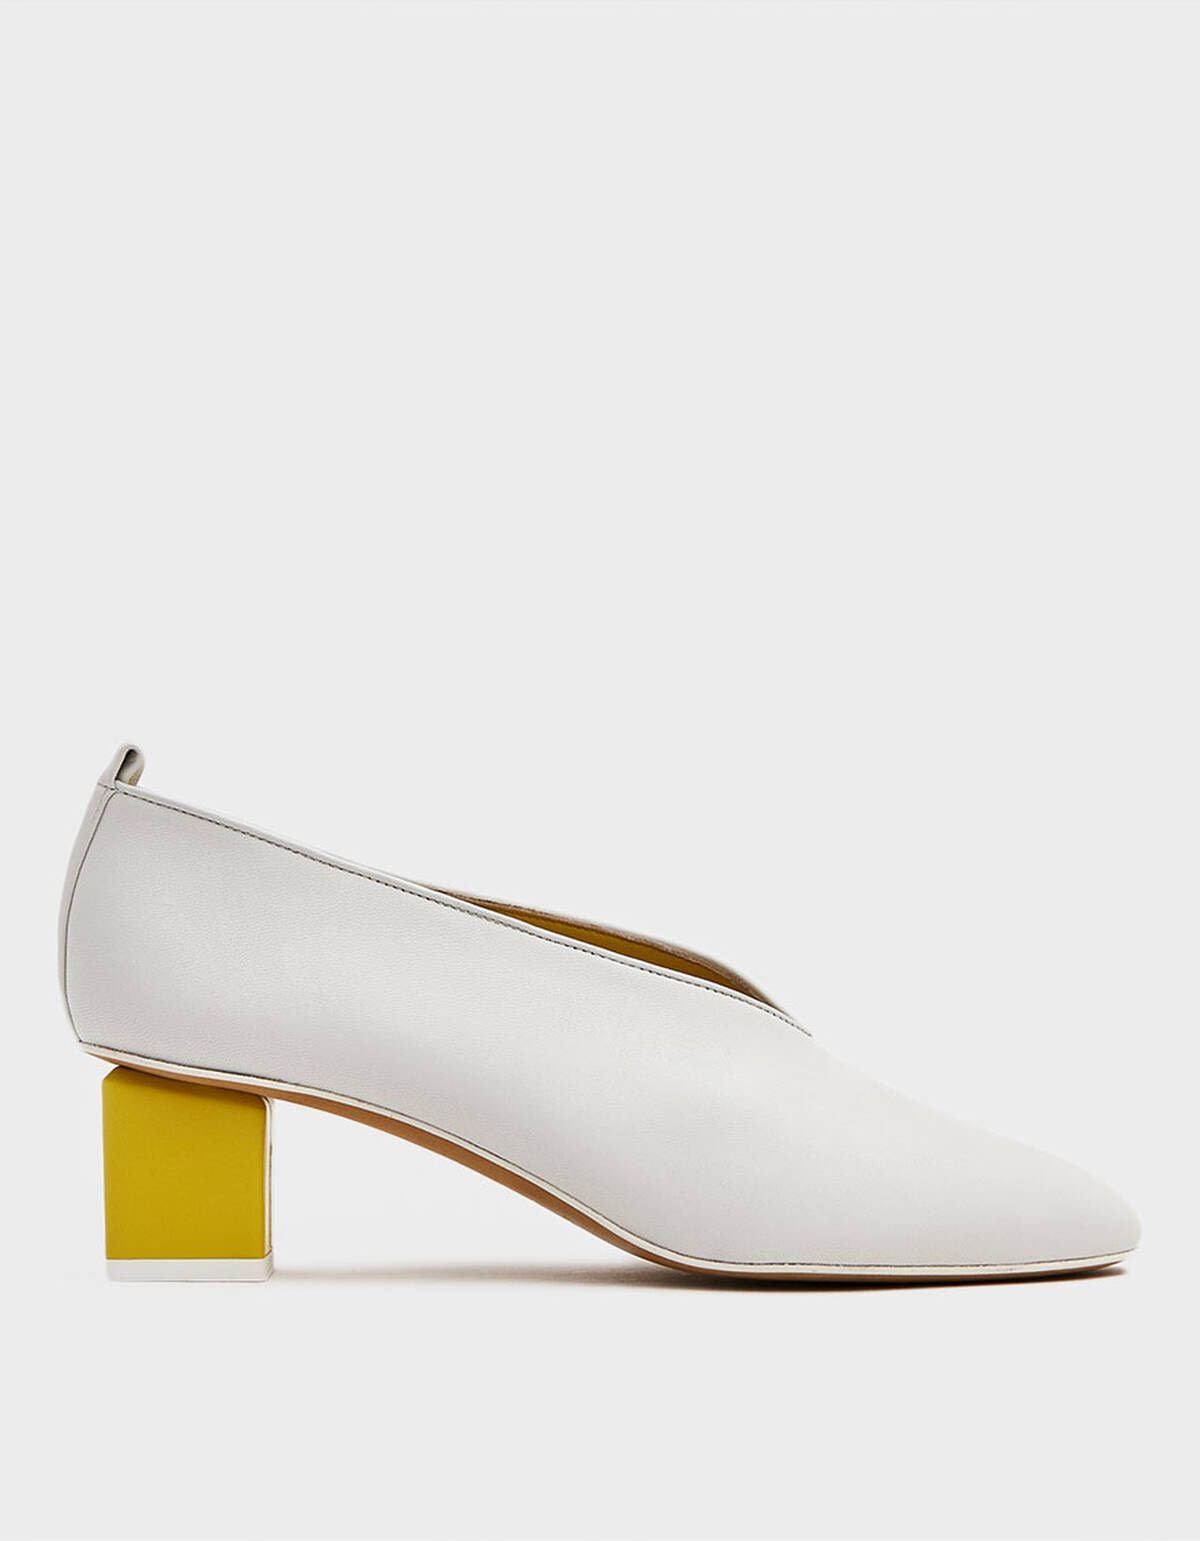 Gray Matters Mildred Classica Heel in Bianco and Limone